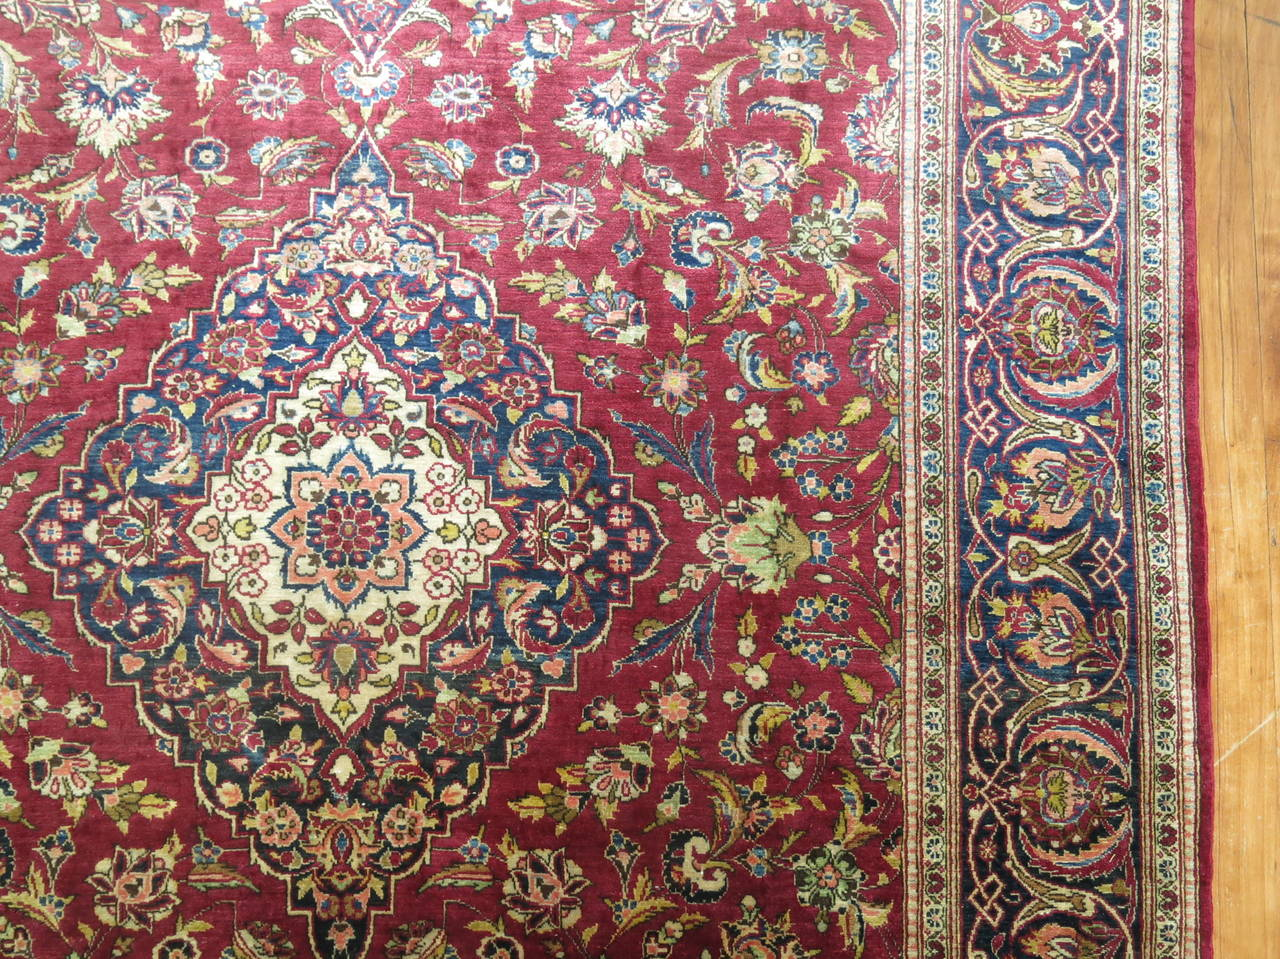 Hand-Woven Antique Persian Silk Area Rug For Sale